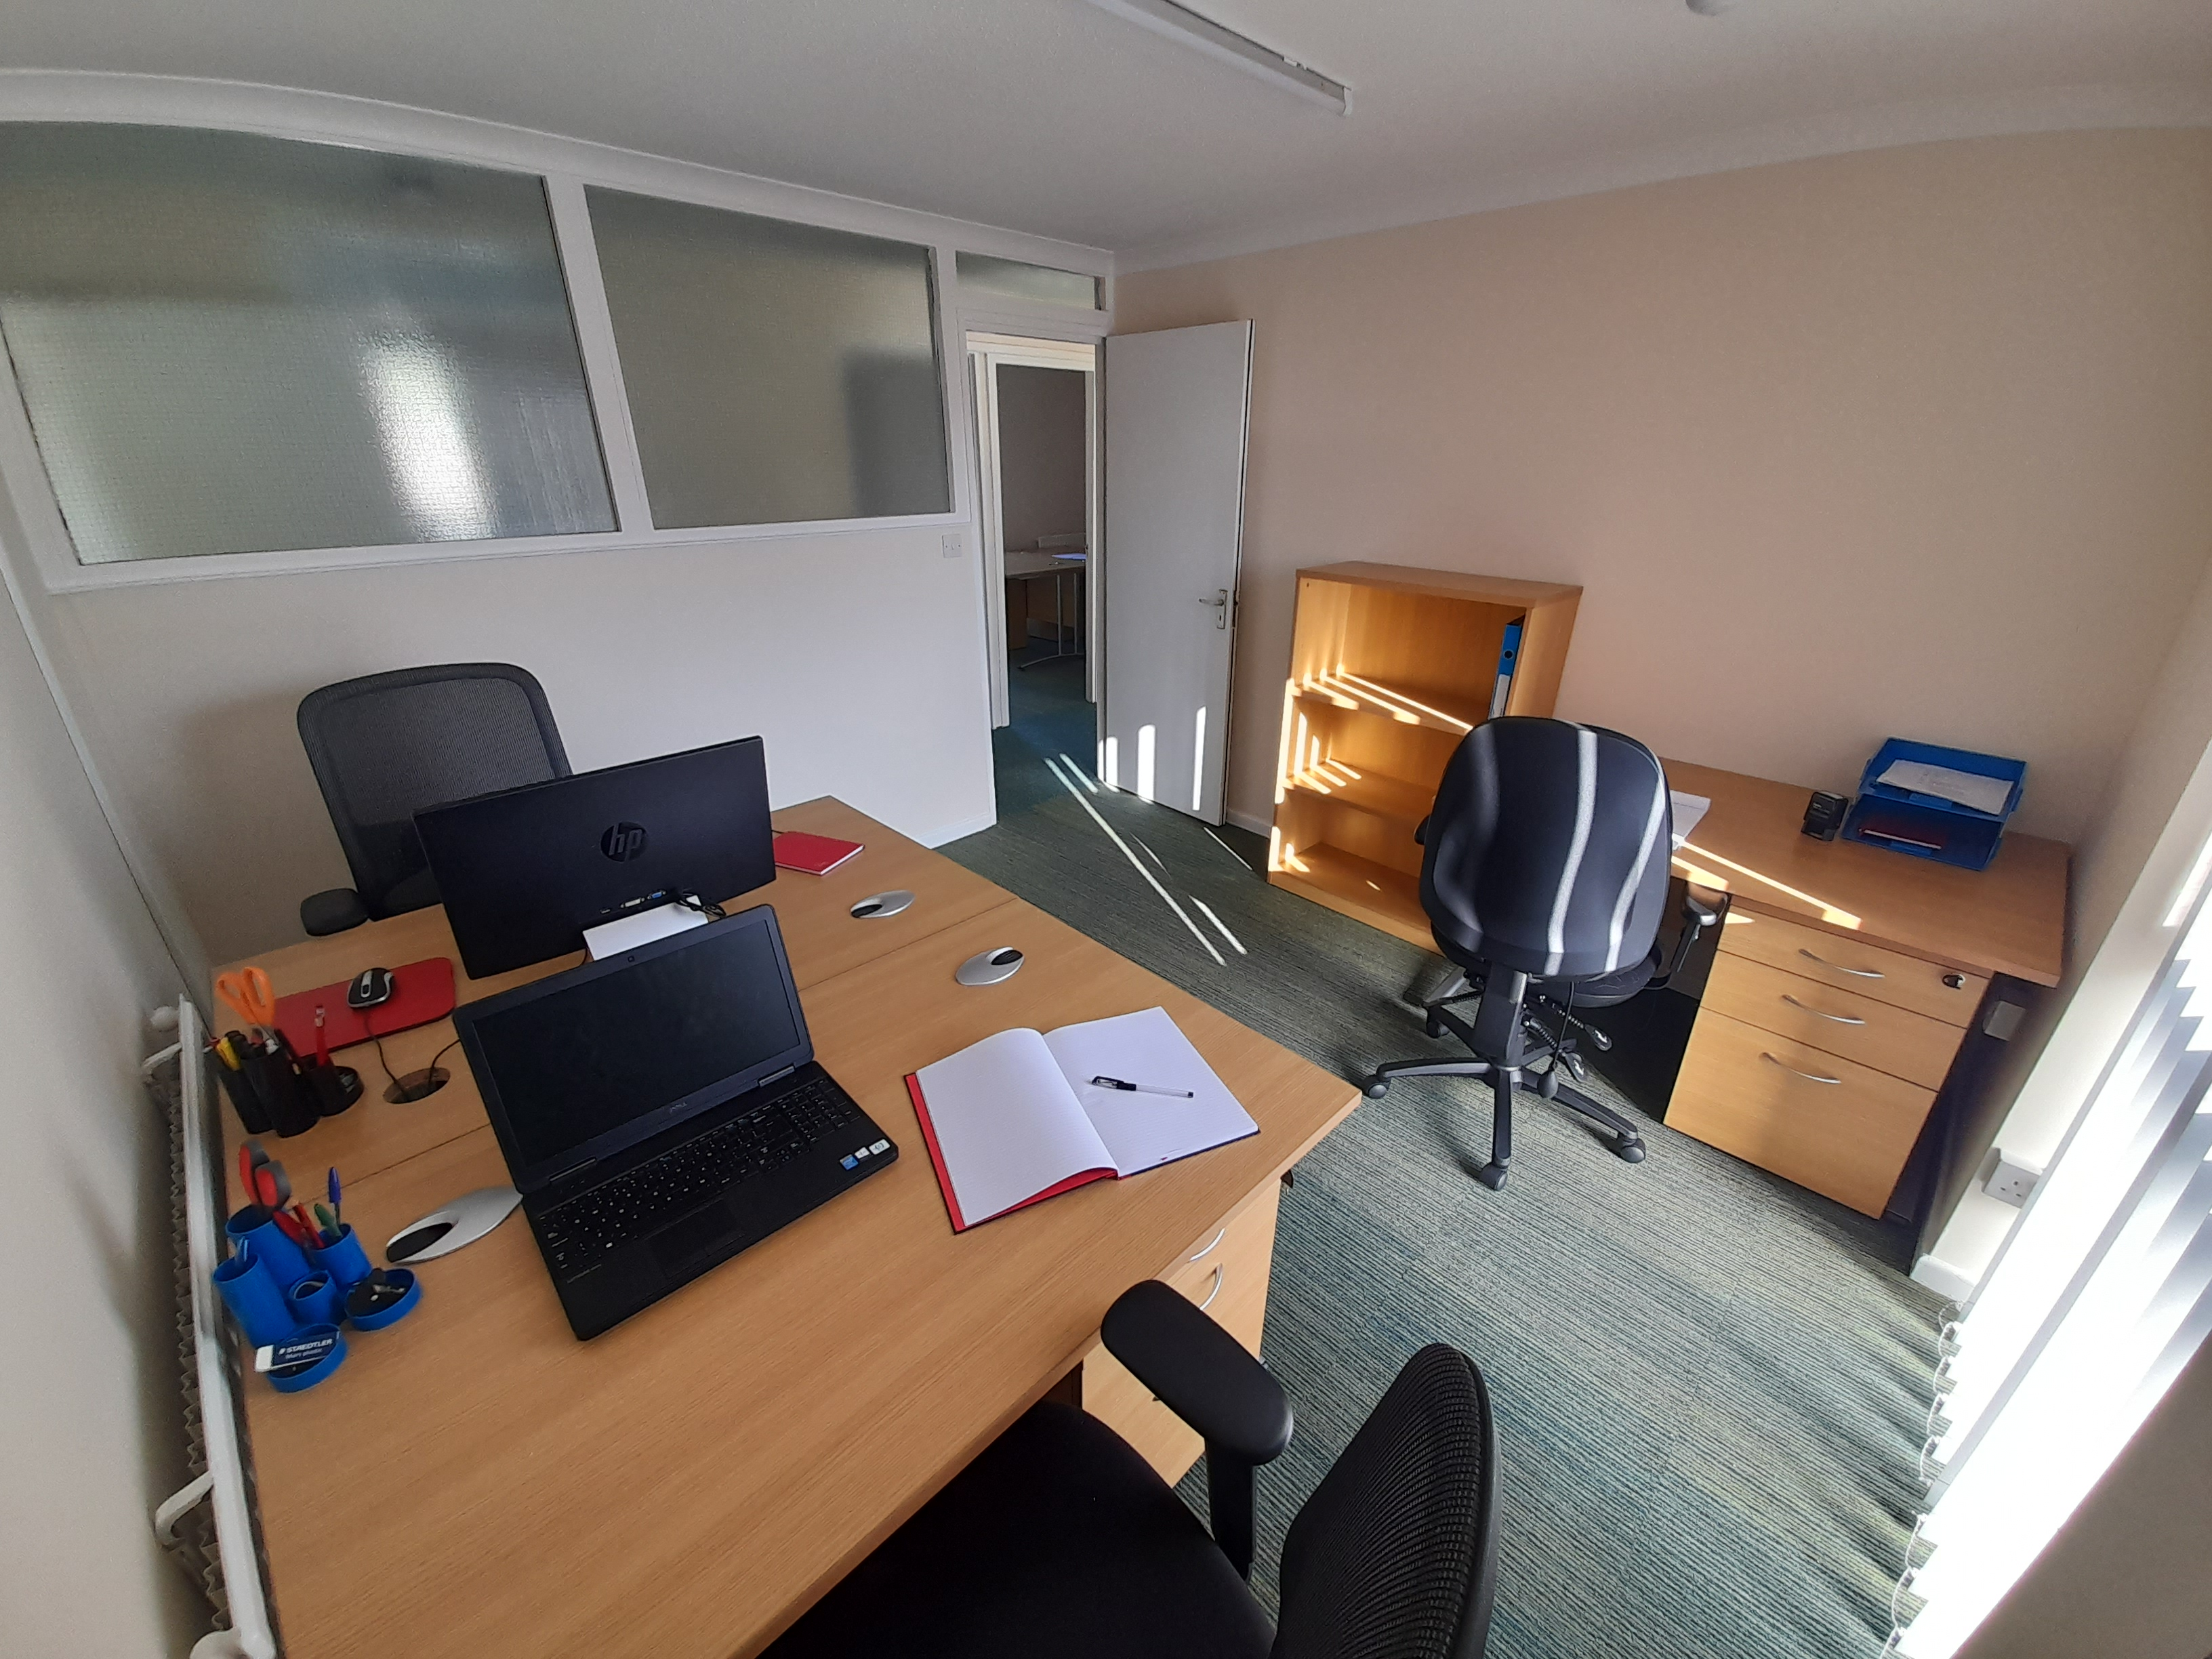 Serviced Offices, Serviced Offices Plympton, Serviced Offices Plymouth, Huxley Hub Plymouth, Huxley Hub Plympton, Easy in Easy Out